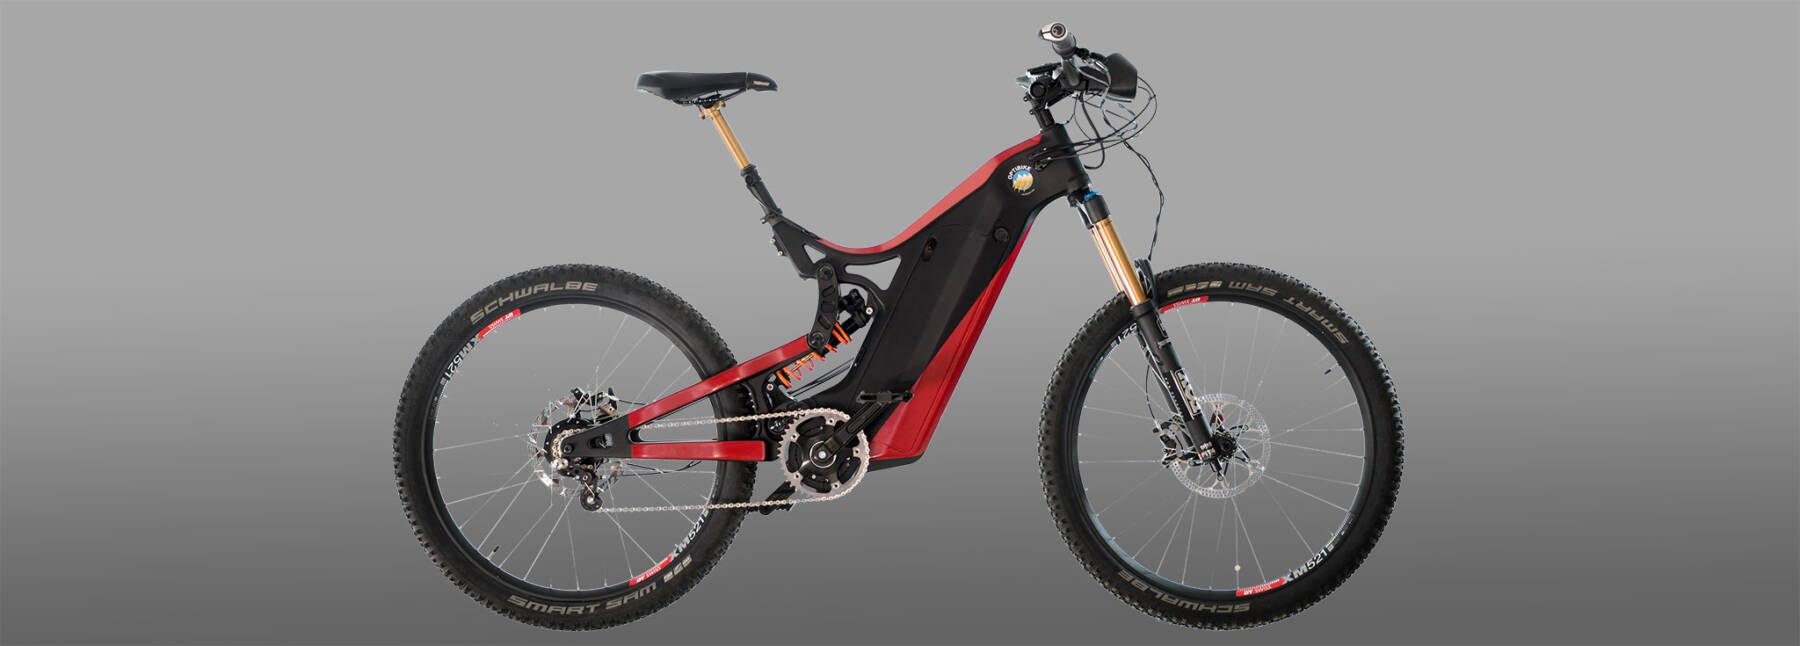 The Best Electric Bike • Hand Built, High Performance Electric Bikes